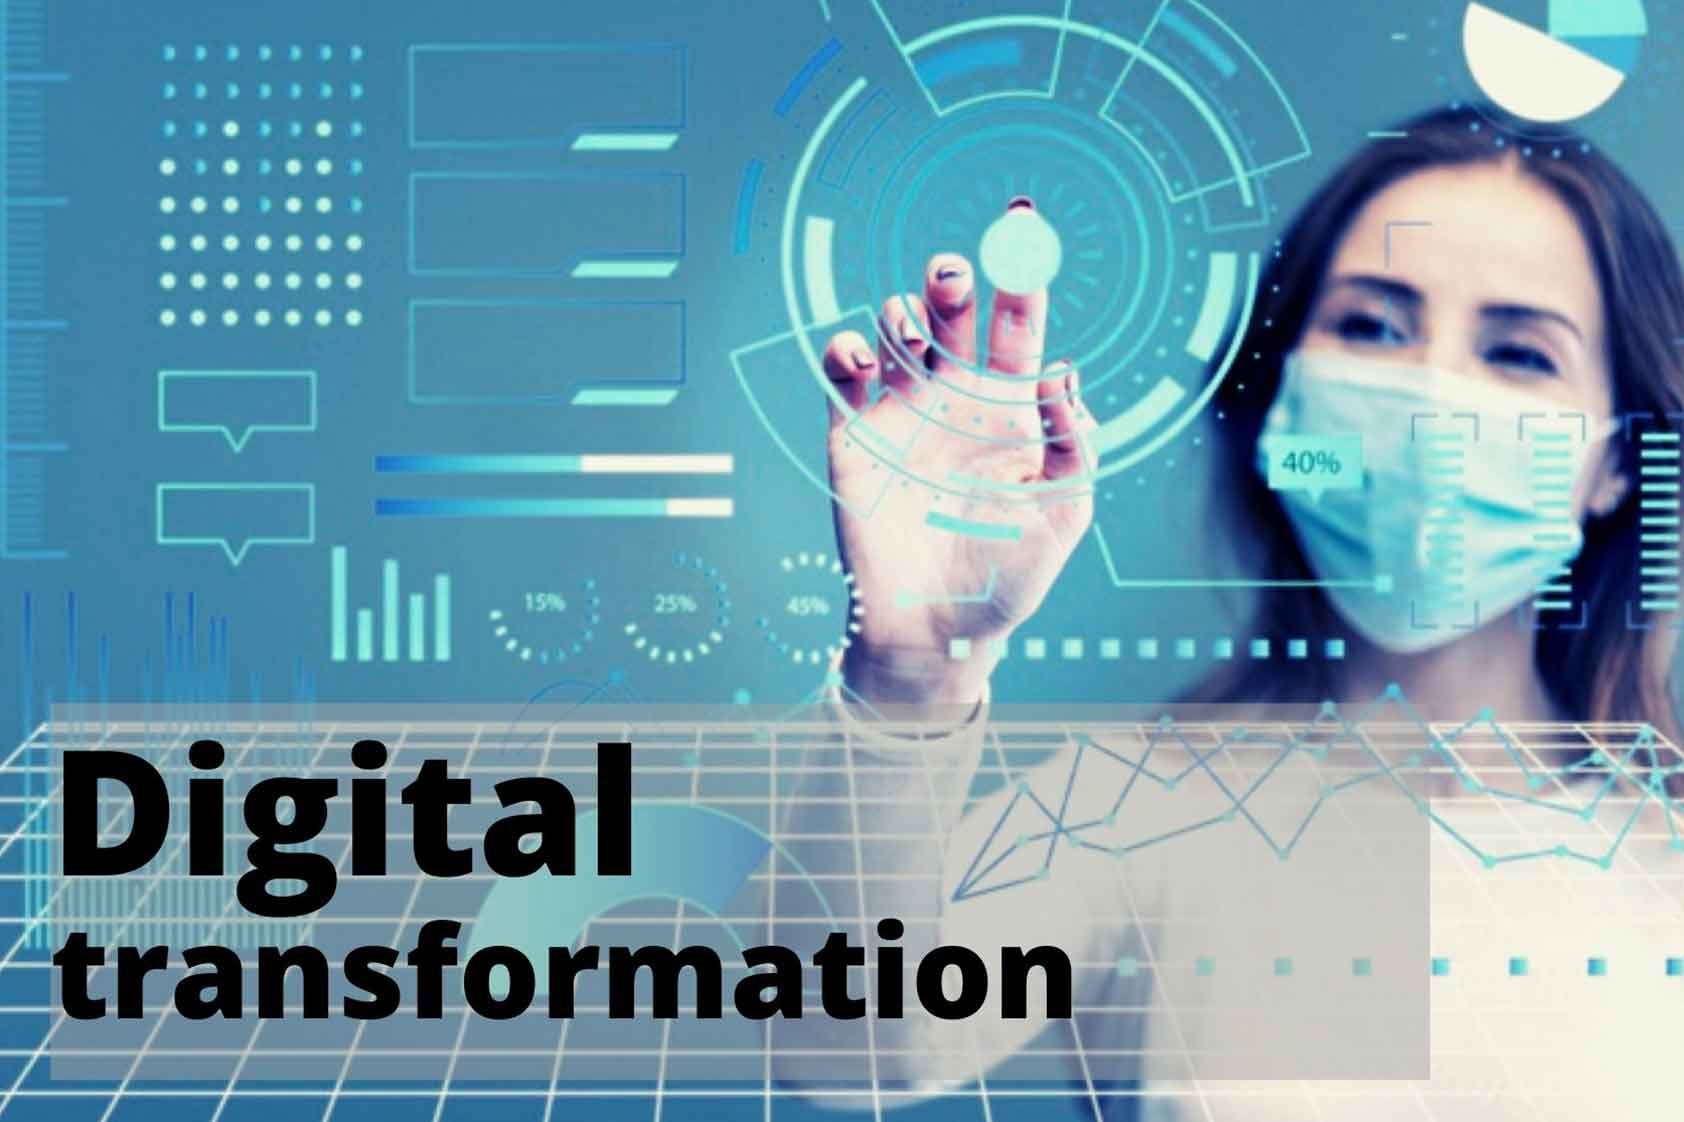 COVID-19 and the need for digital transformation